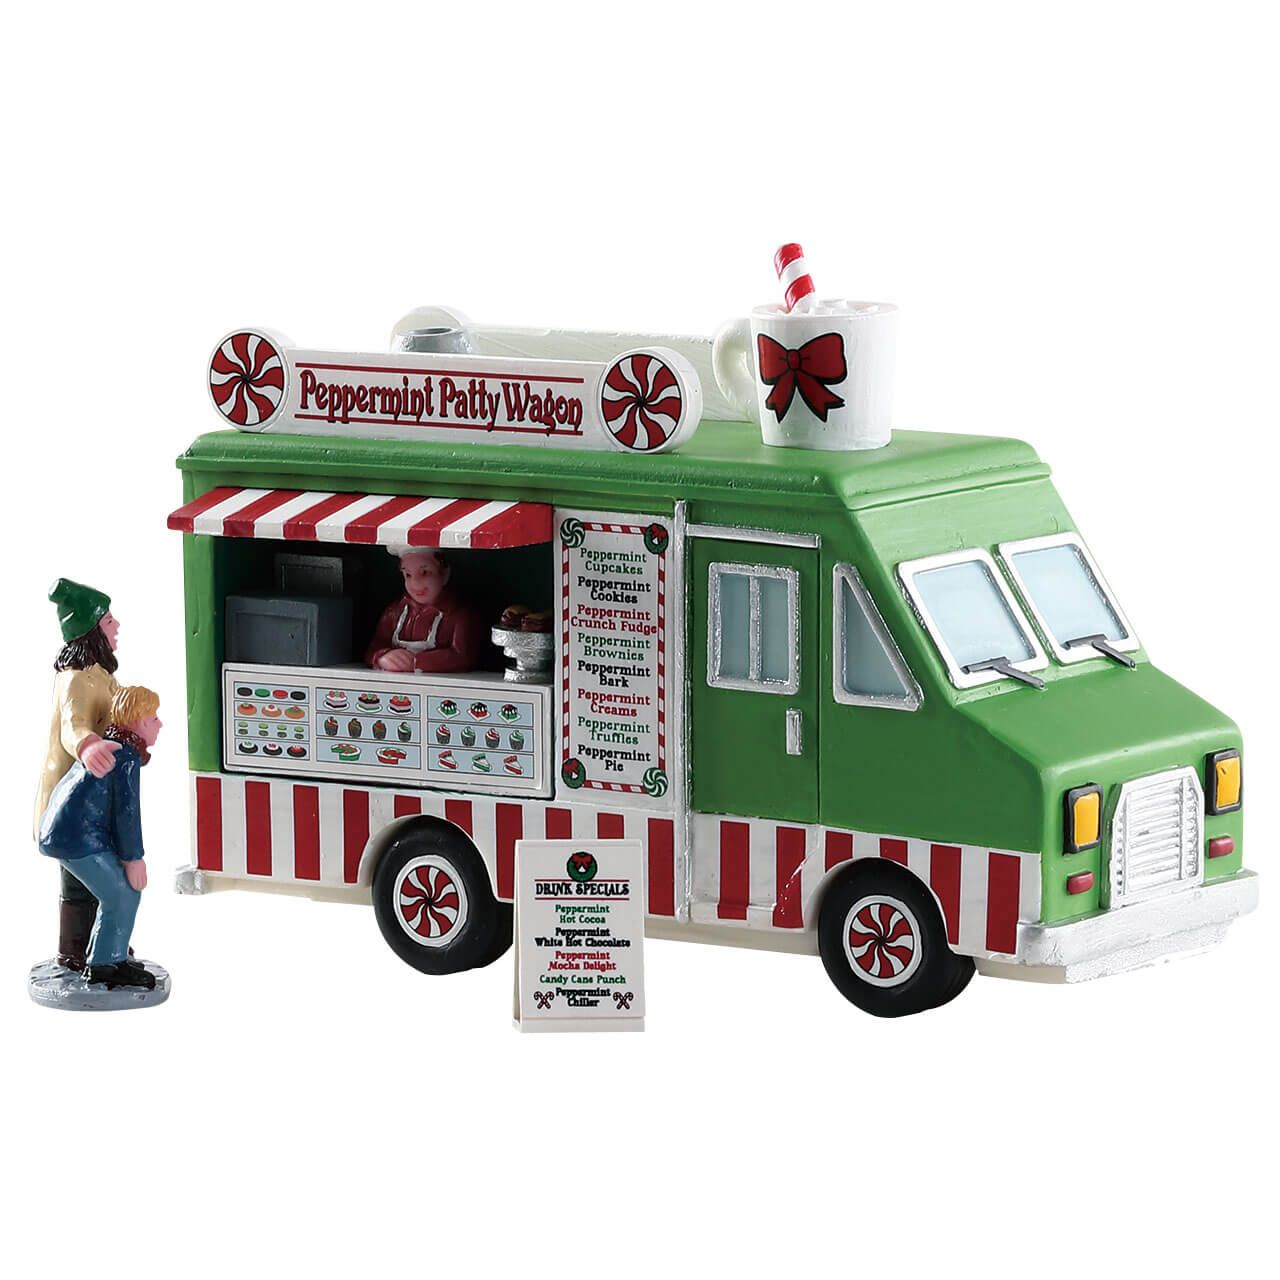 Lemax Christmas Village Michaels.Lemax Peppermint Food Truck Sku 83364 Released In 2018 As